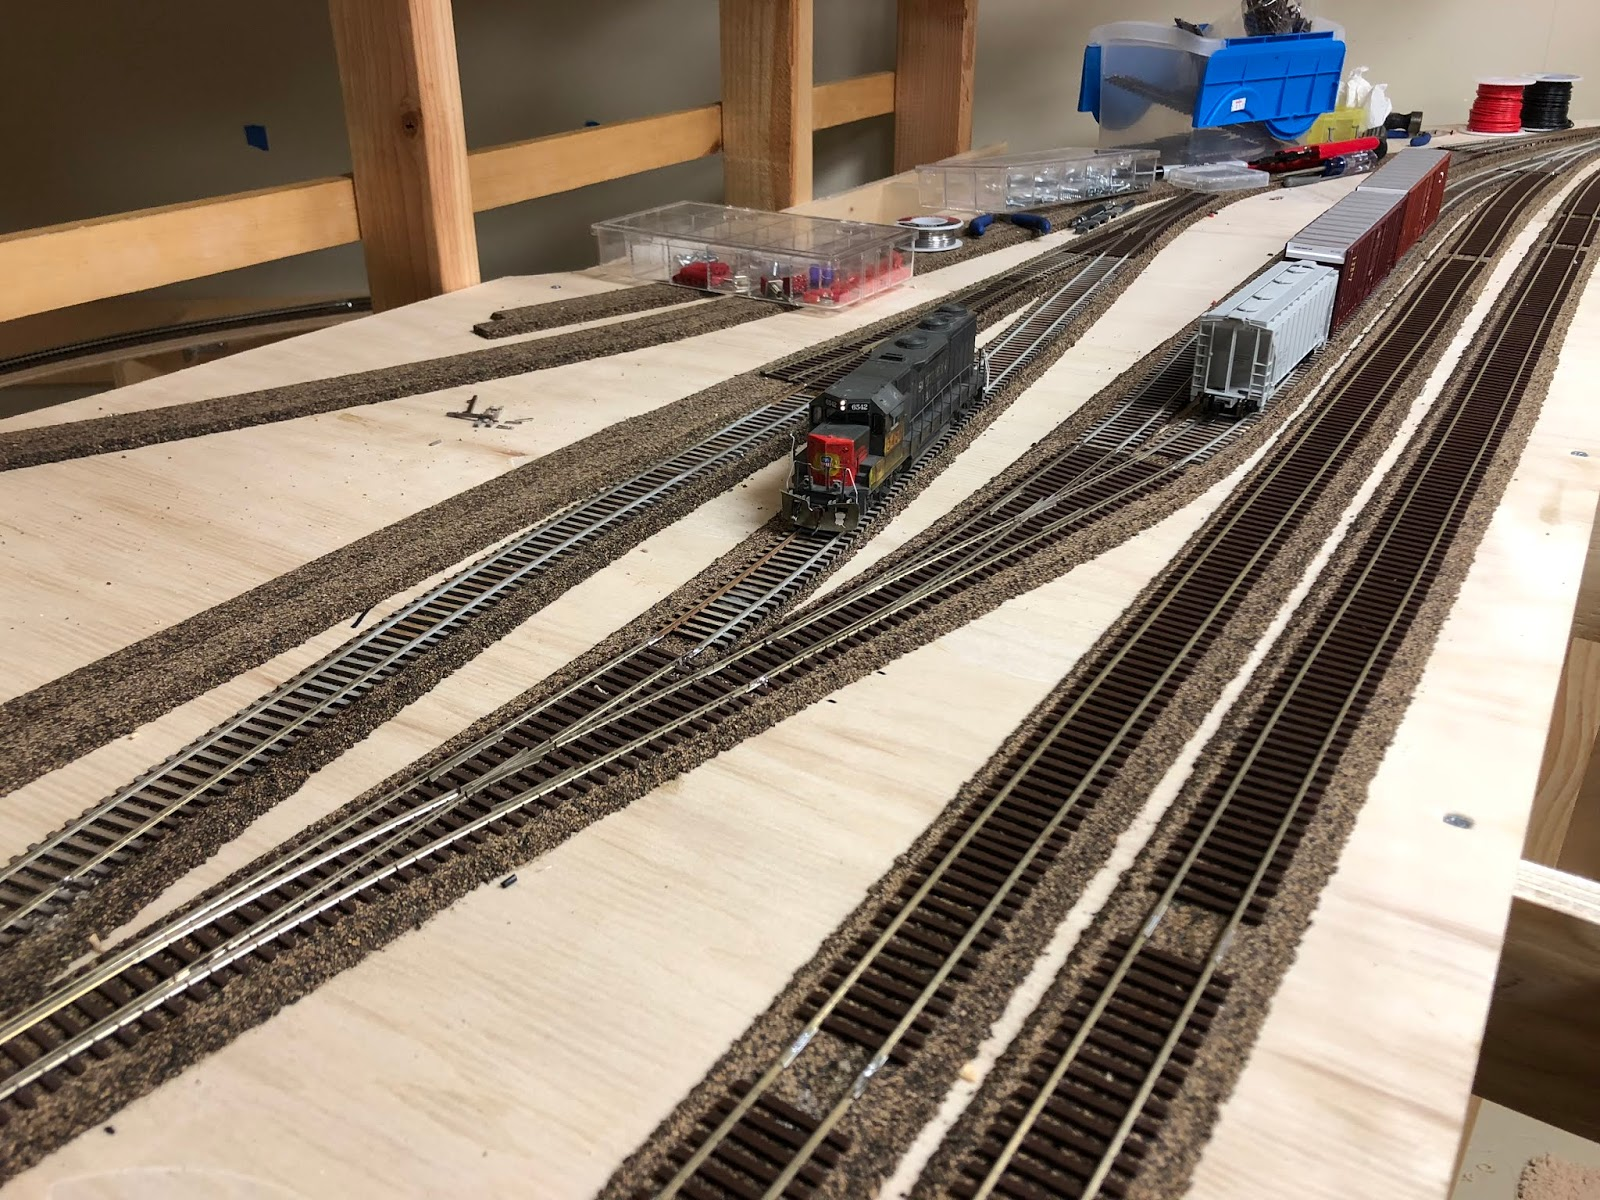 Wiring Ho Tracks For Storage Electrical Diagrams Track Oakridge Construction 2 Model Railroad Hobbyist Magazine Parts